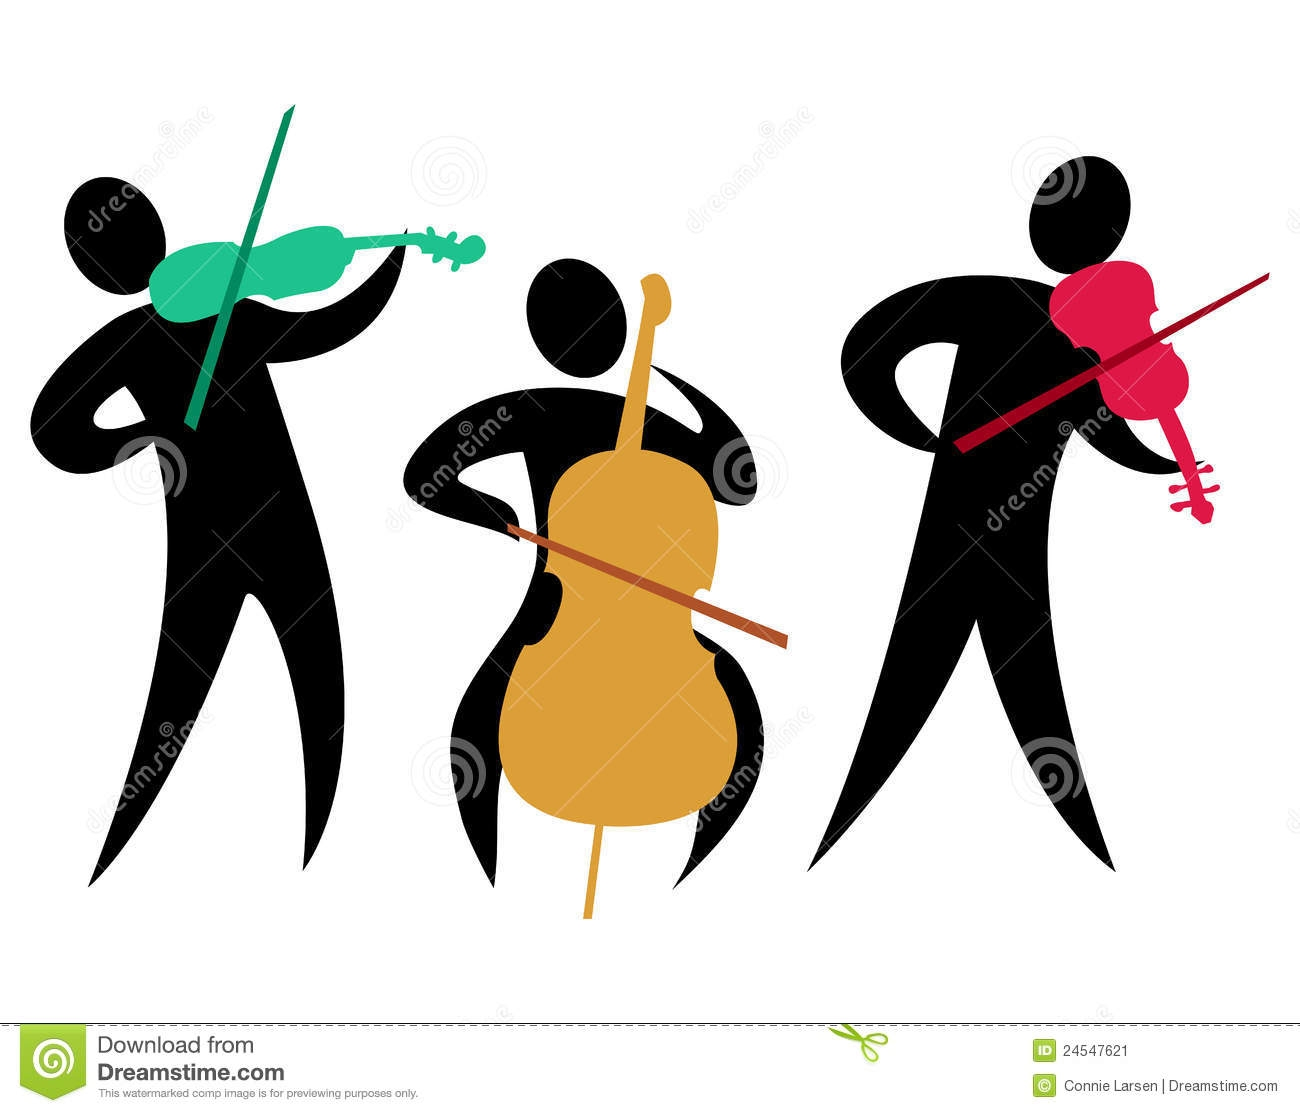 Awesome collection digital c. Orchestra clipart